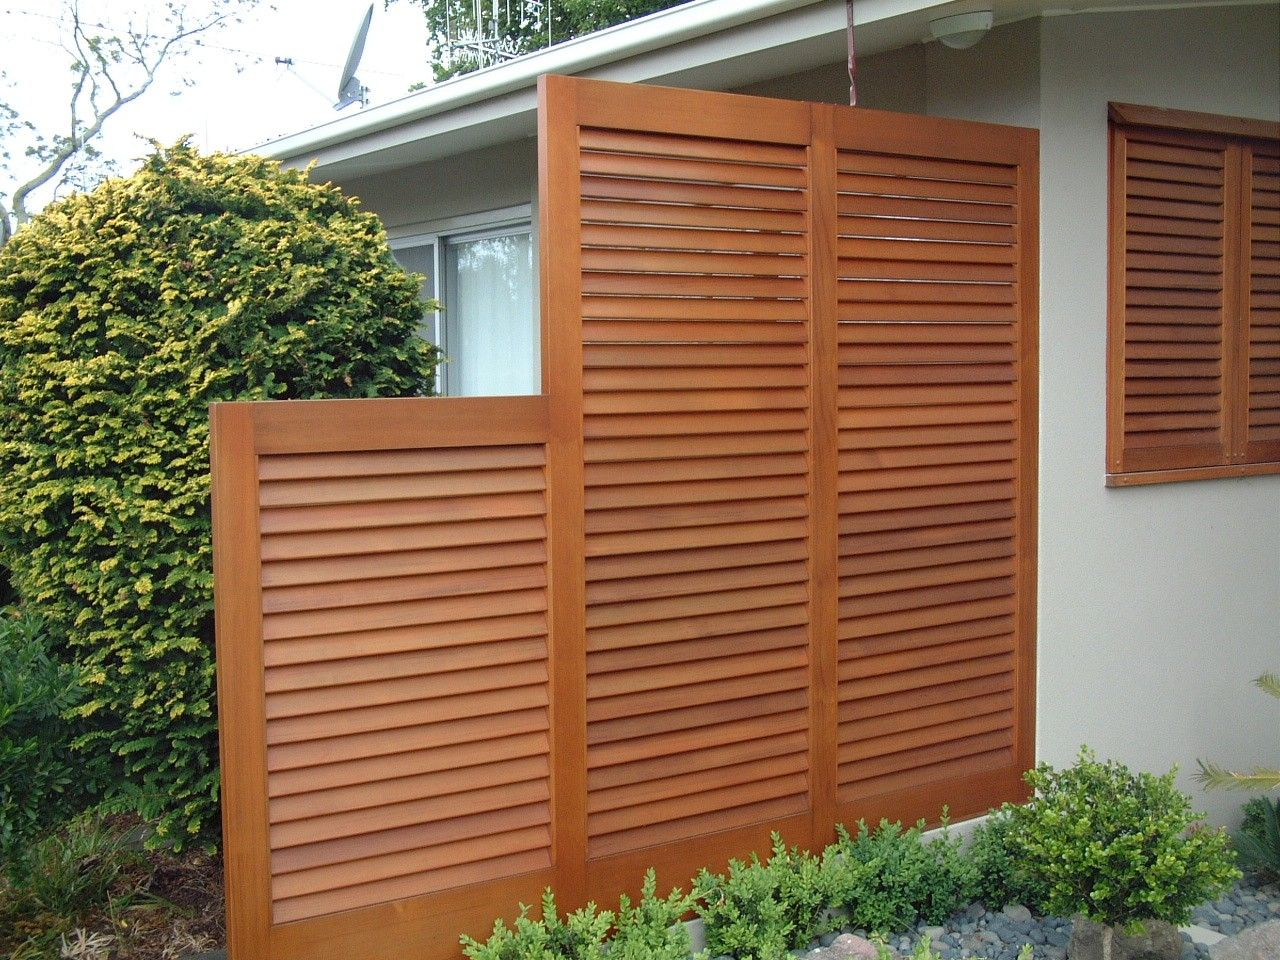 Beautiful exterior outdoor privacy screens shop at for Wood screen fence